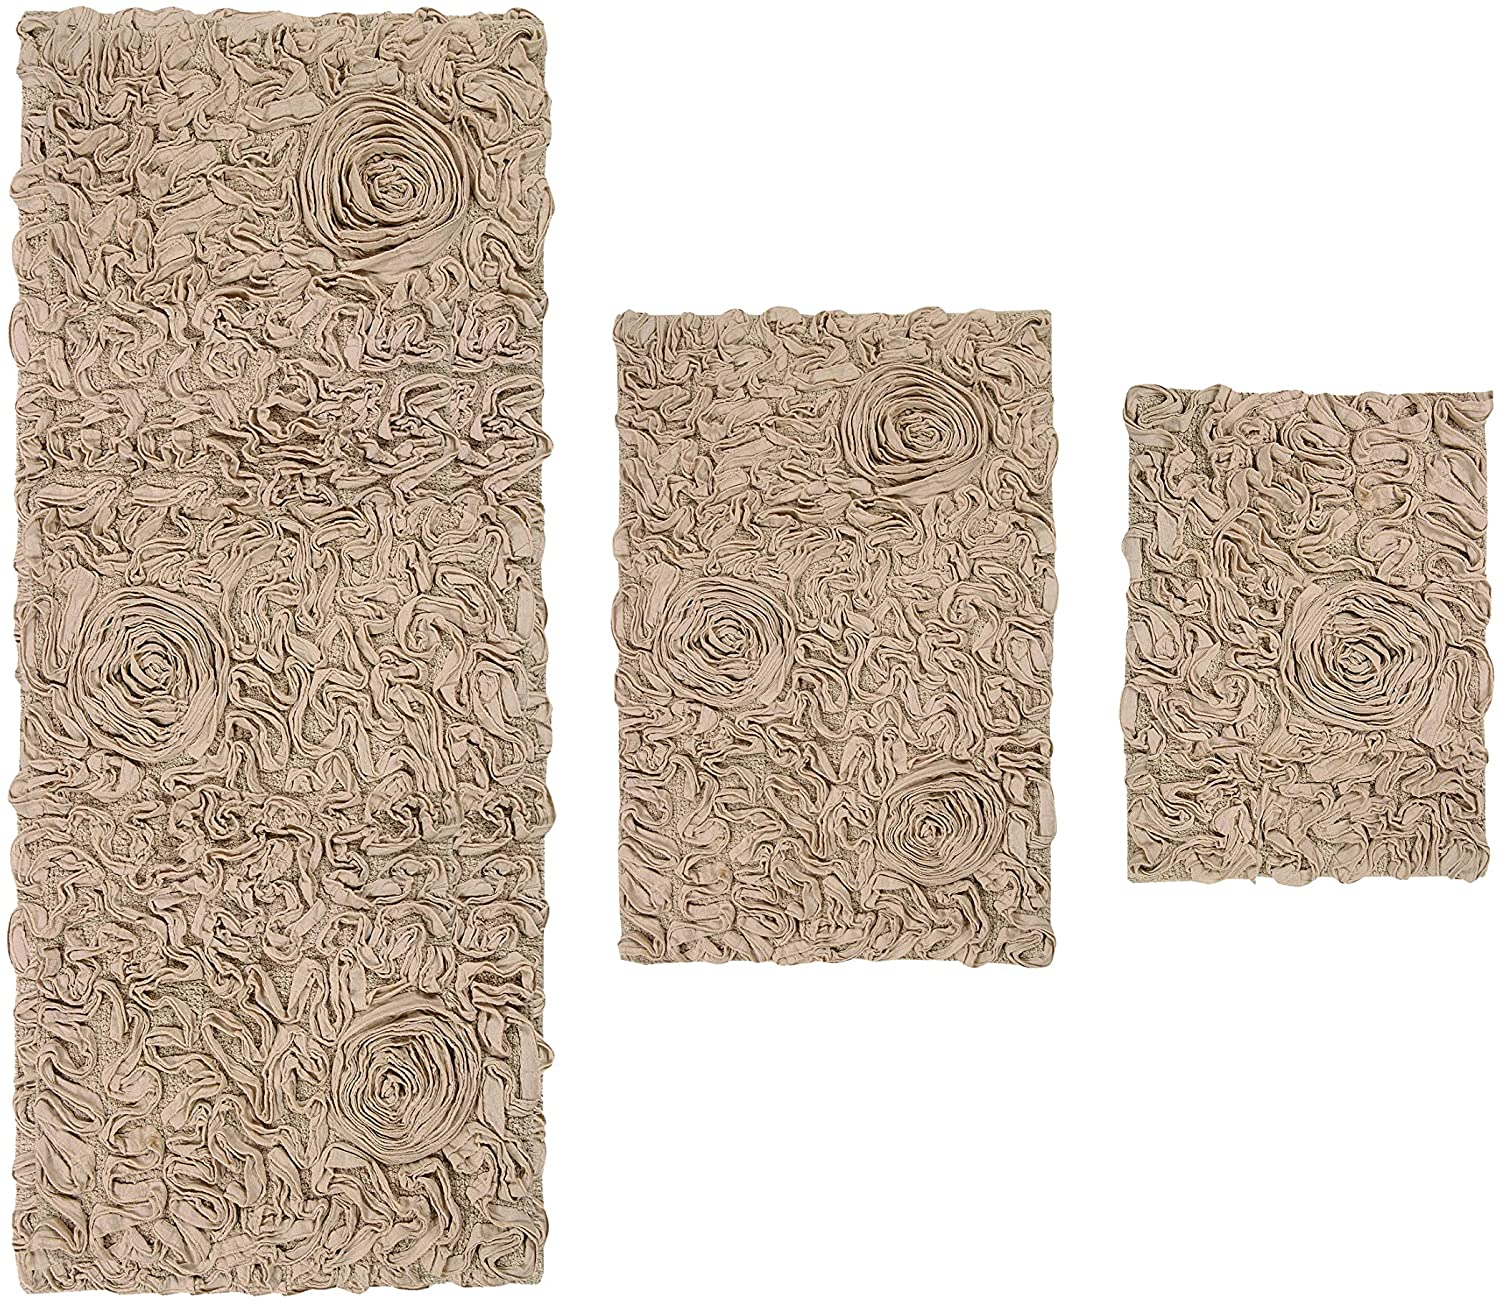 Home Weavers Bell Flower Collection Absorbent Cotton, Soft Rug, Machine wash Dry, 17